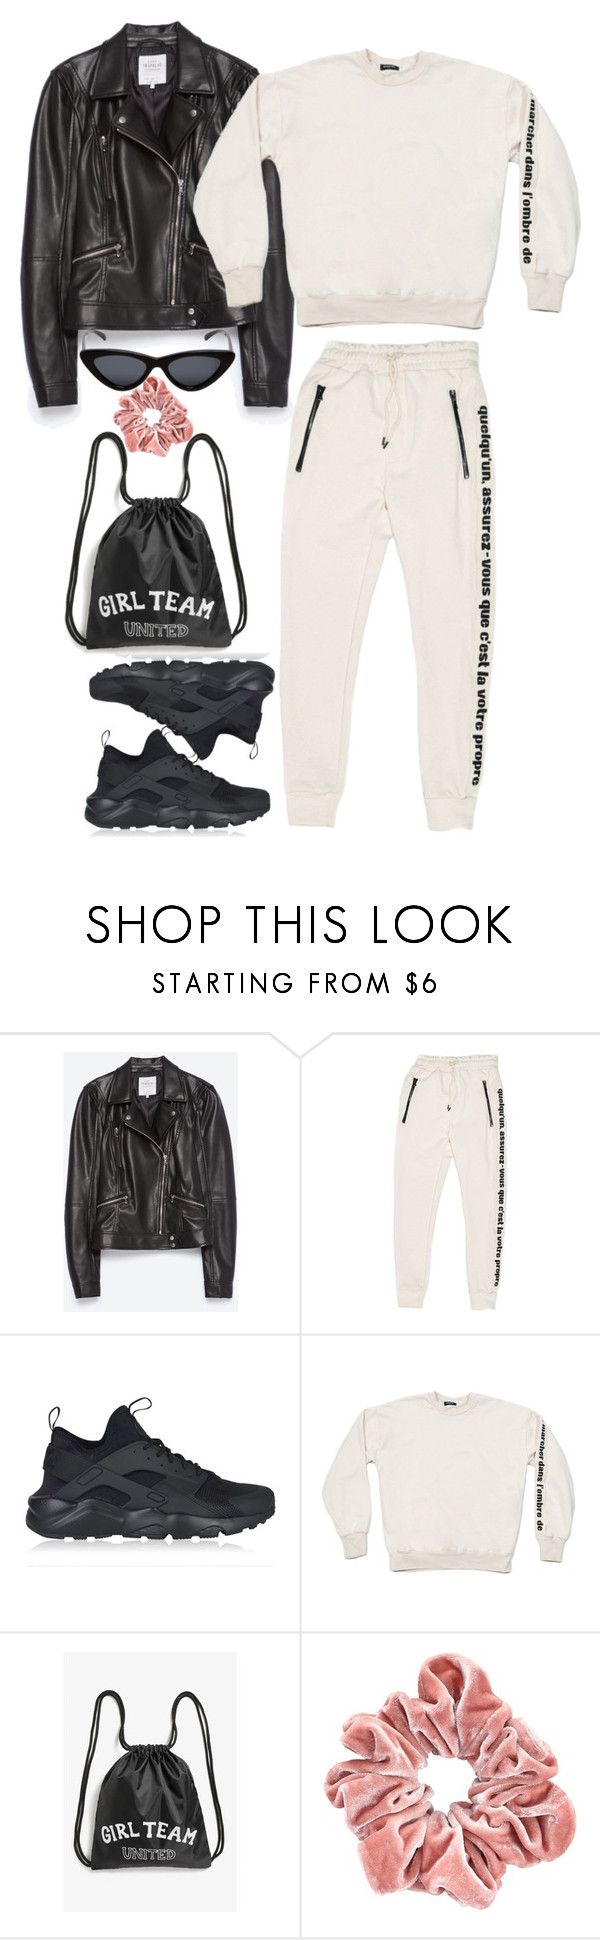 """""""airport attire"""" by francesca-valentina-gagliardi ❤ liked on Polyvore featuring Zara, NIKE, Monki and Le Specs"""